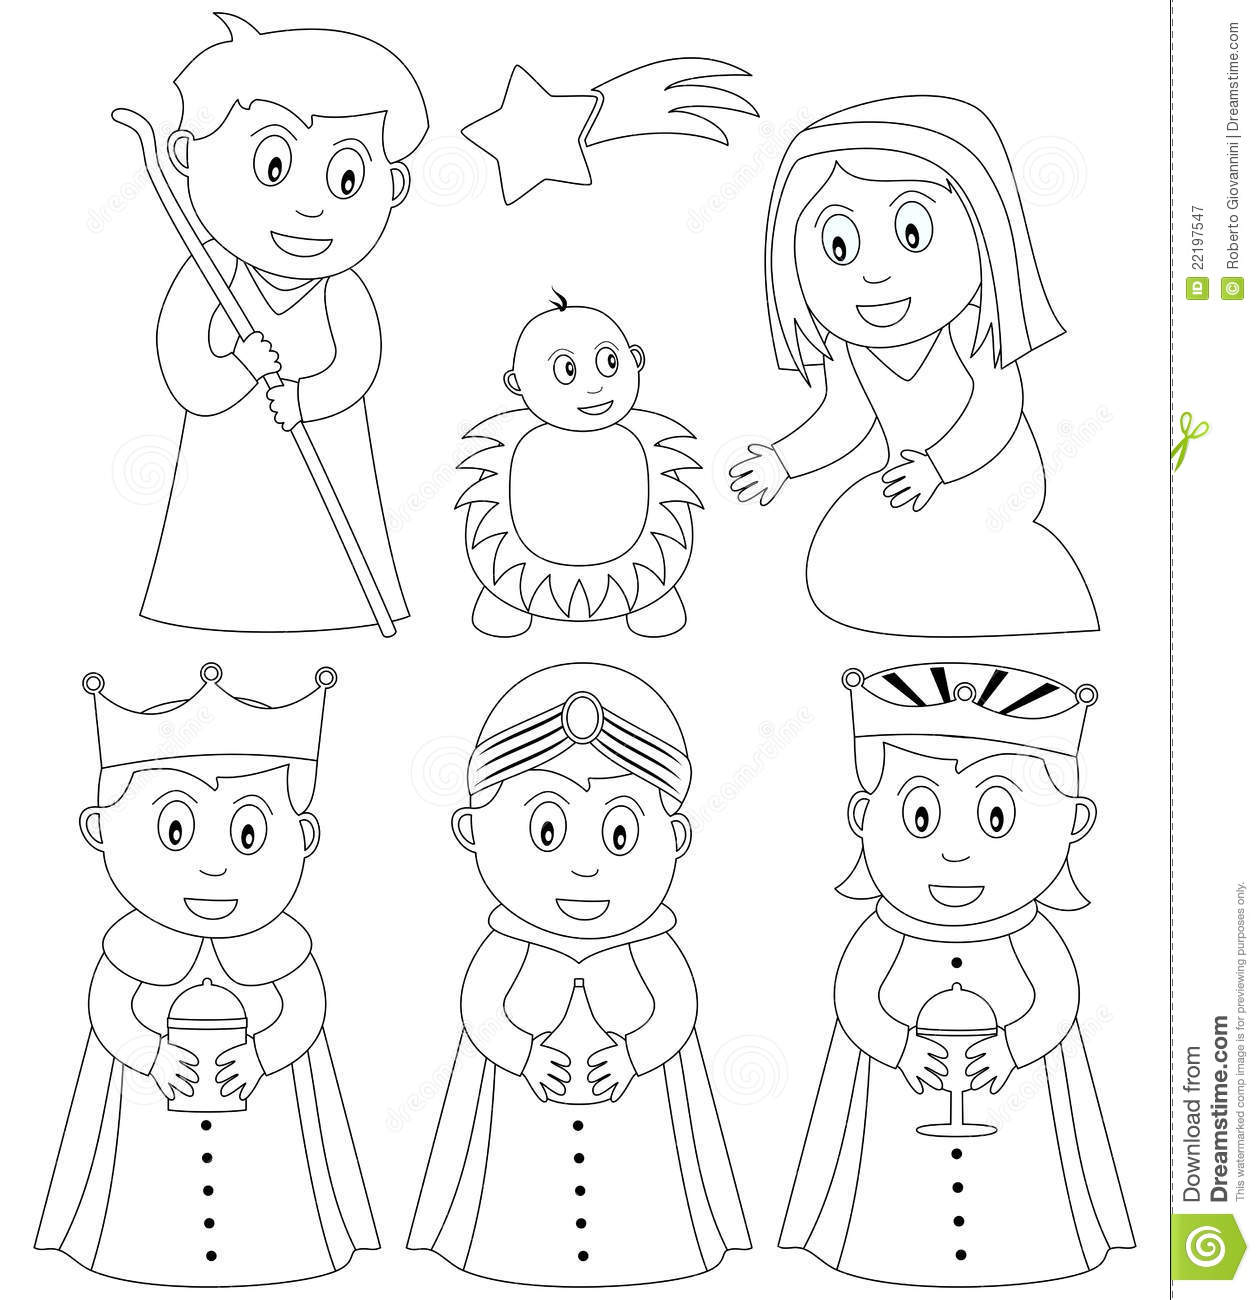 Coloring Christmas Nativity Royalty Free Stock Photography